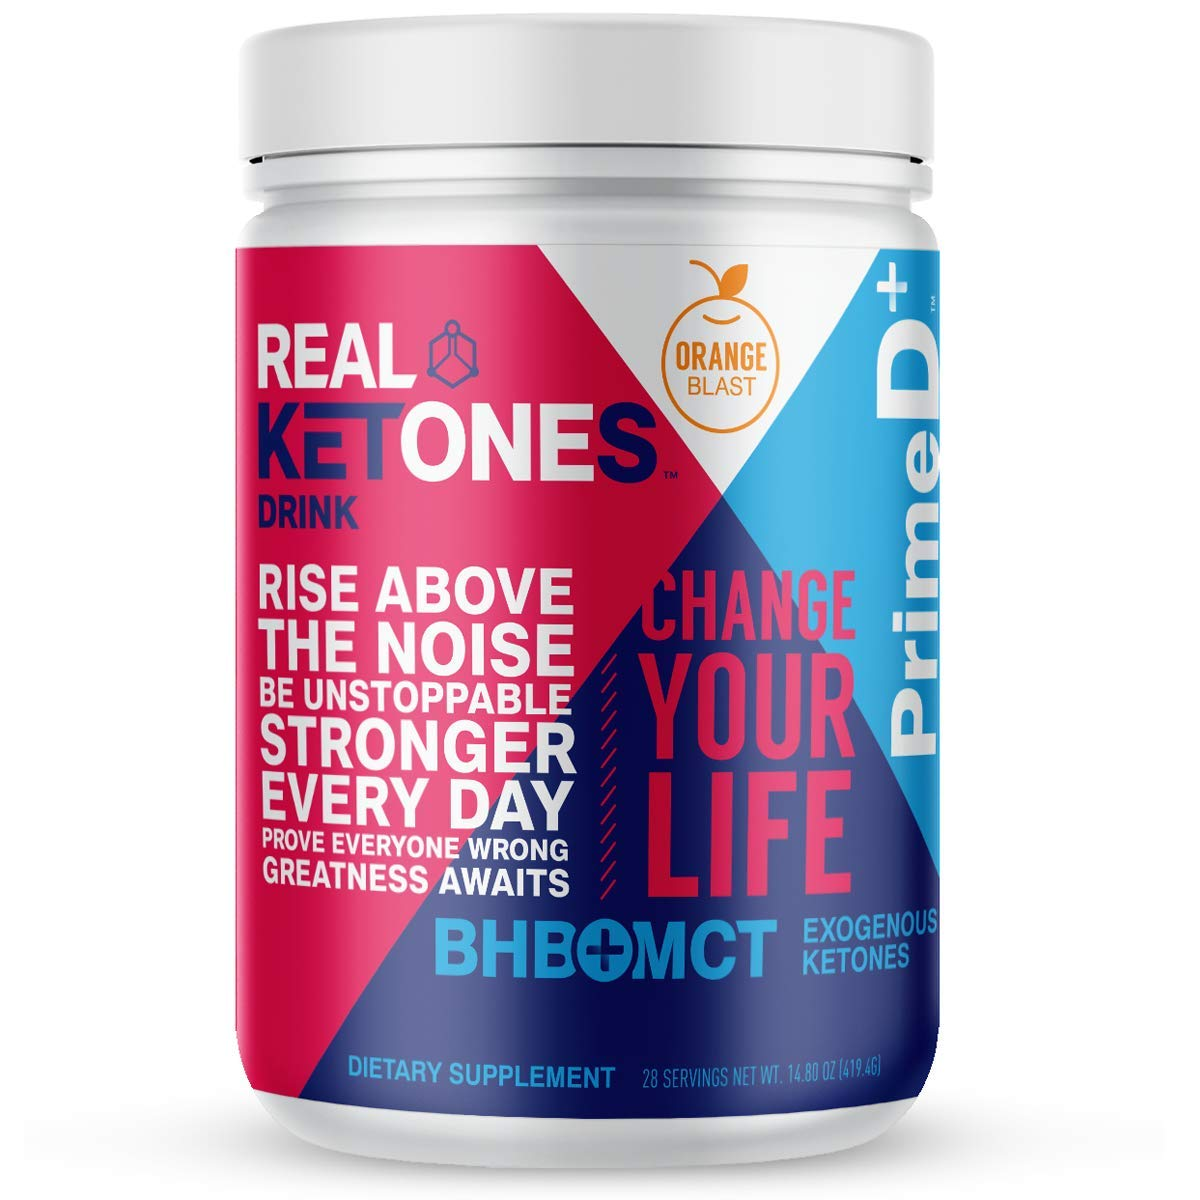 Real Ketones Prime D+ Keto BHB (Beta-Hydroxybuterate) and MCT Exogenous Ketones Powder Low Carb Ketogenic Drink to Boost Energy and Mental Clarity (Orange Blast) (28 Serving) by KEGENIX